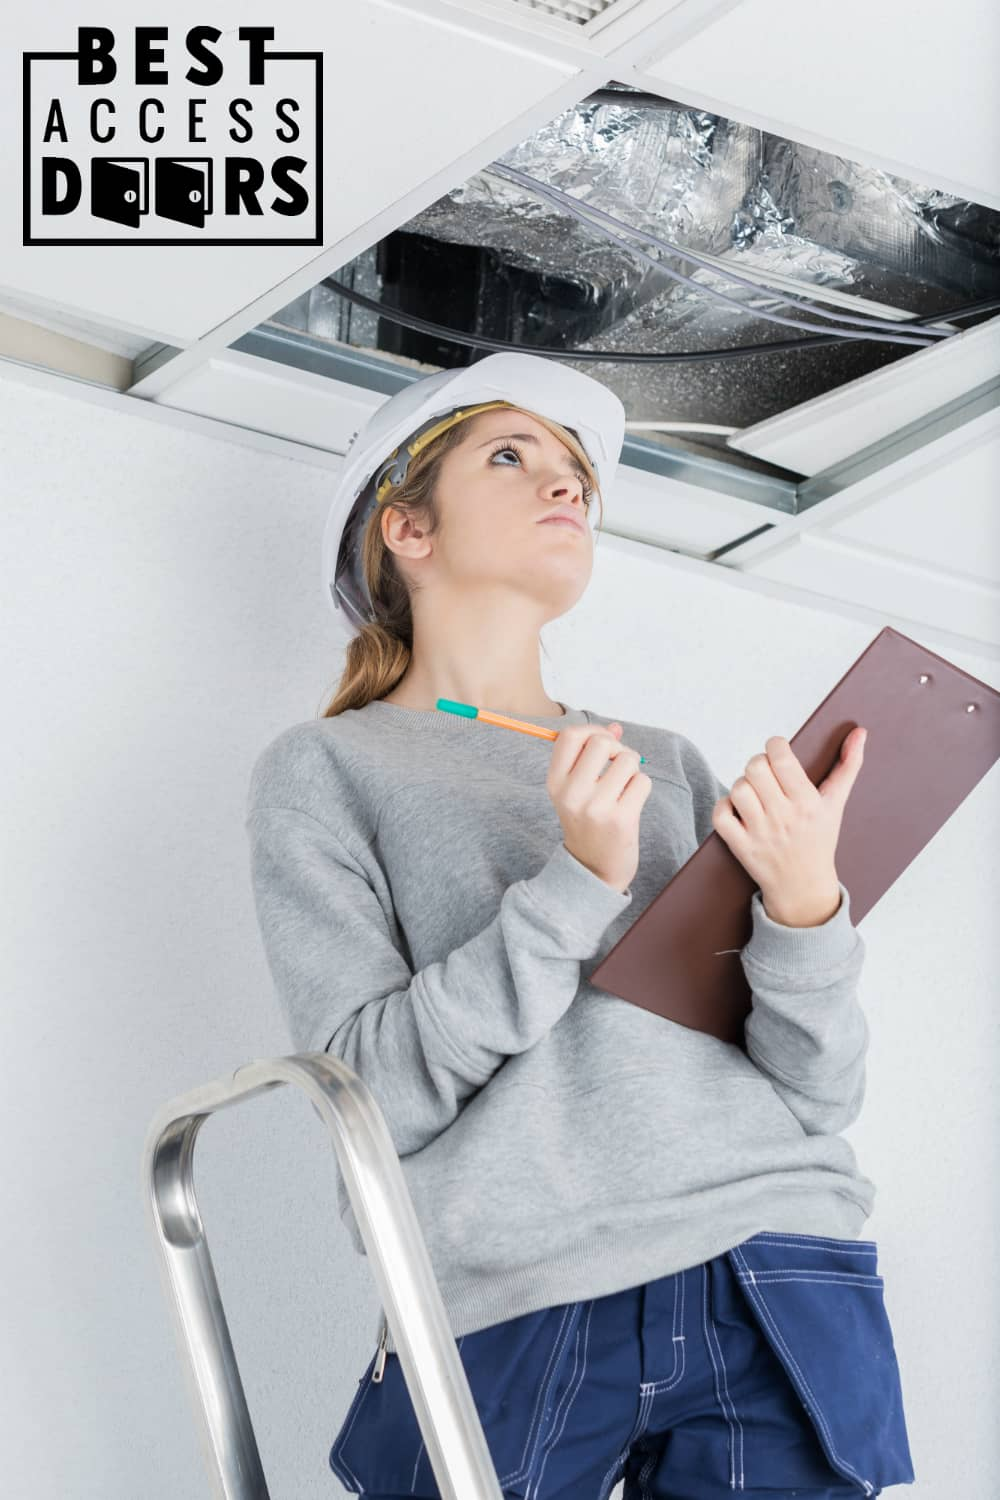 Drywall Install Quick Tips